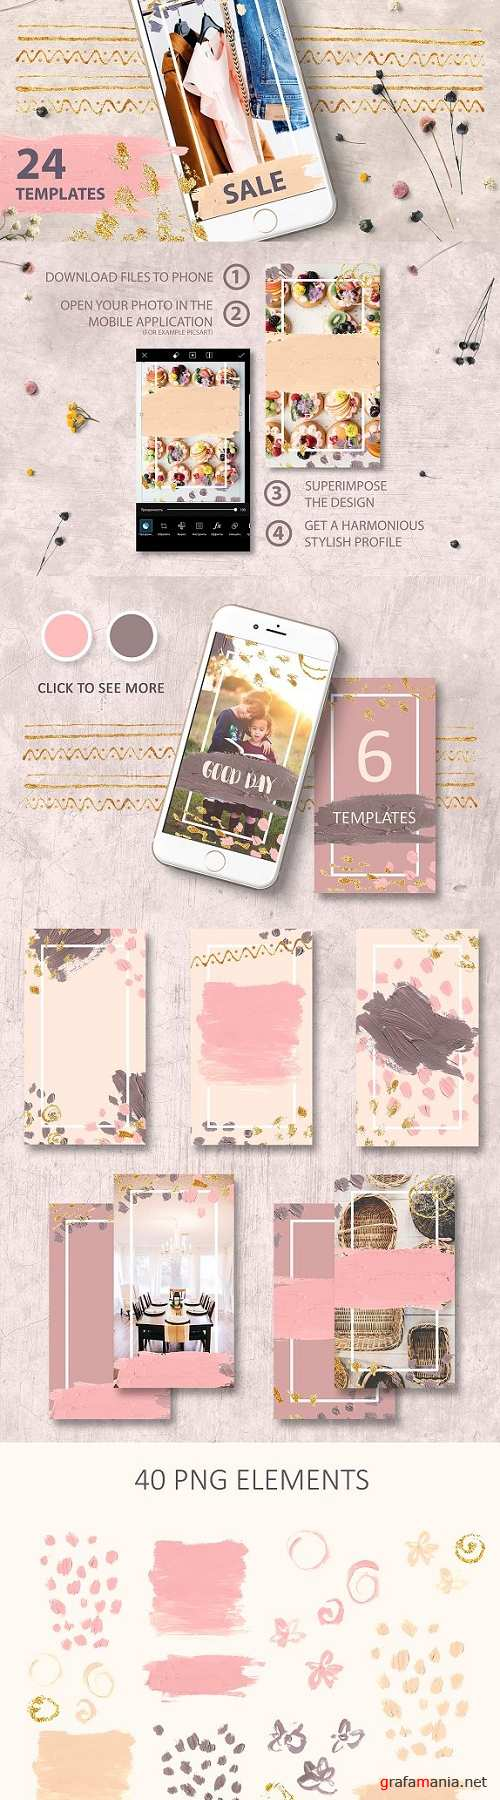 Instagram Stories Template - 2265493